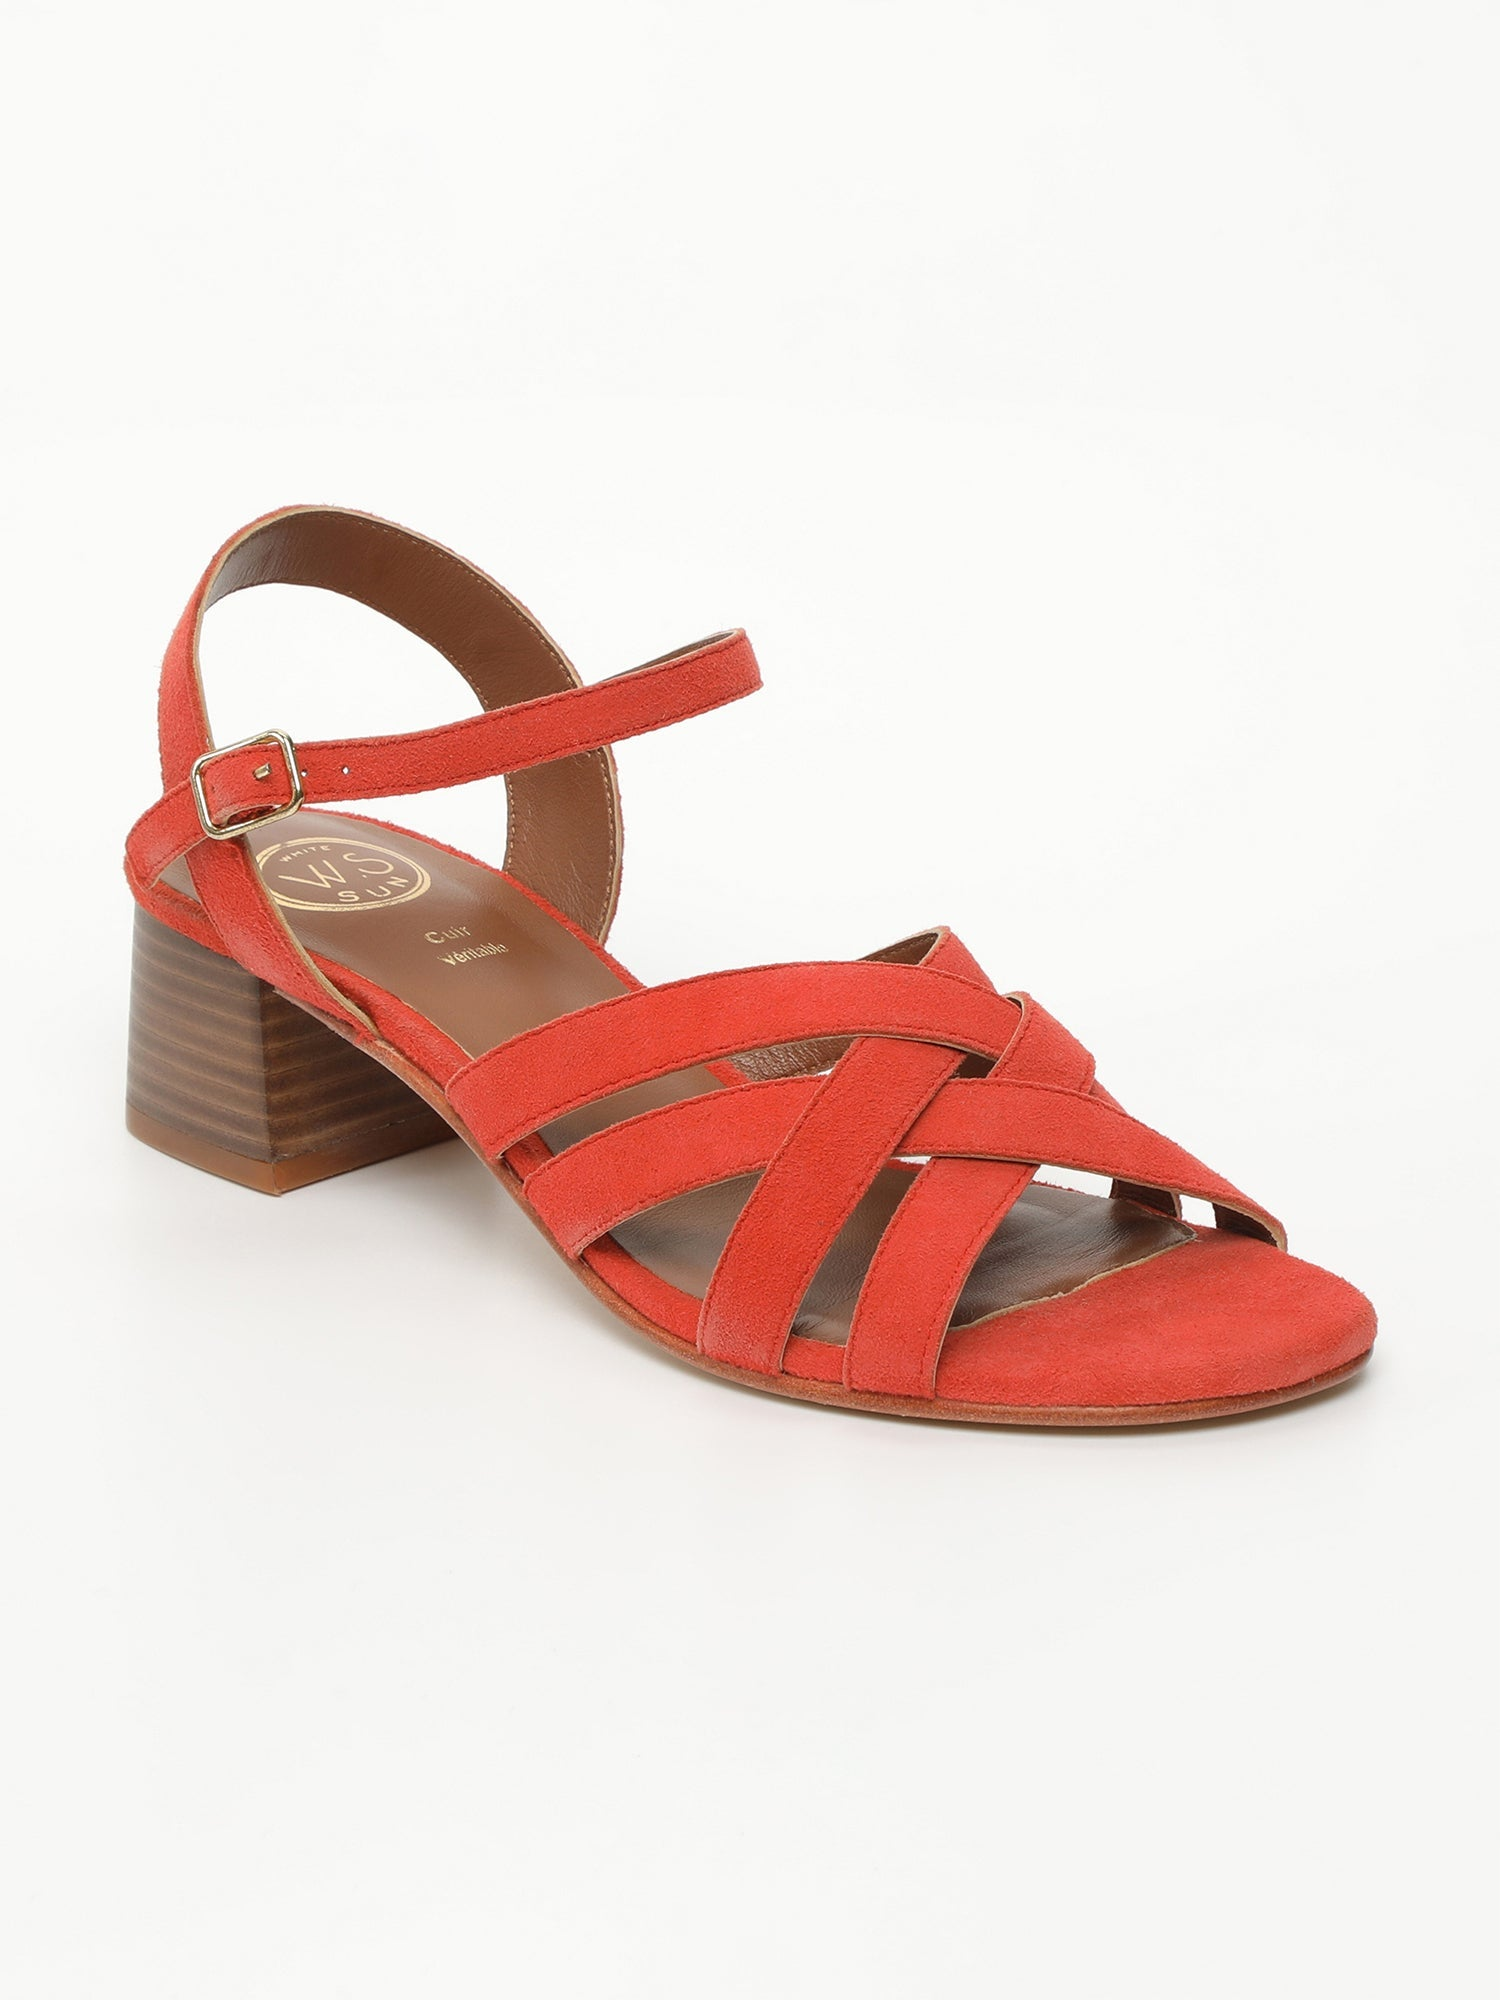 ERELL Sandales Talons Cuir Orange